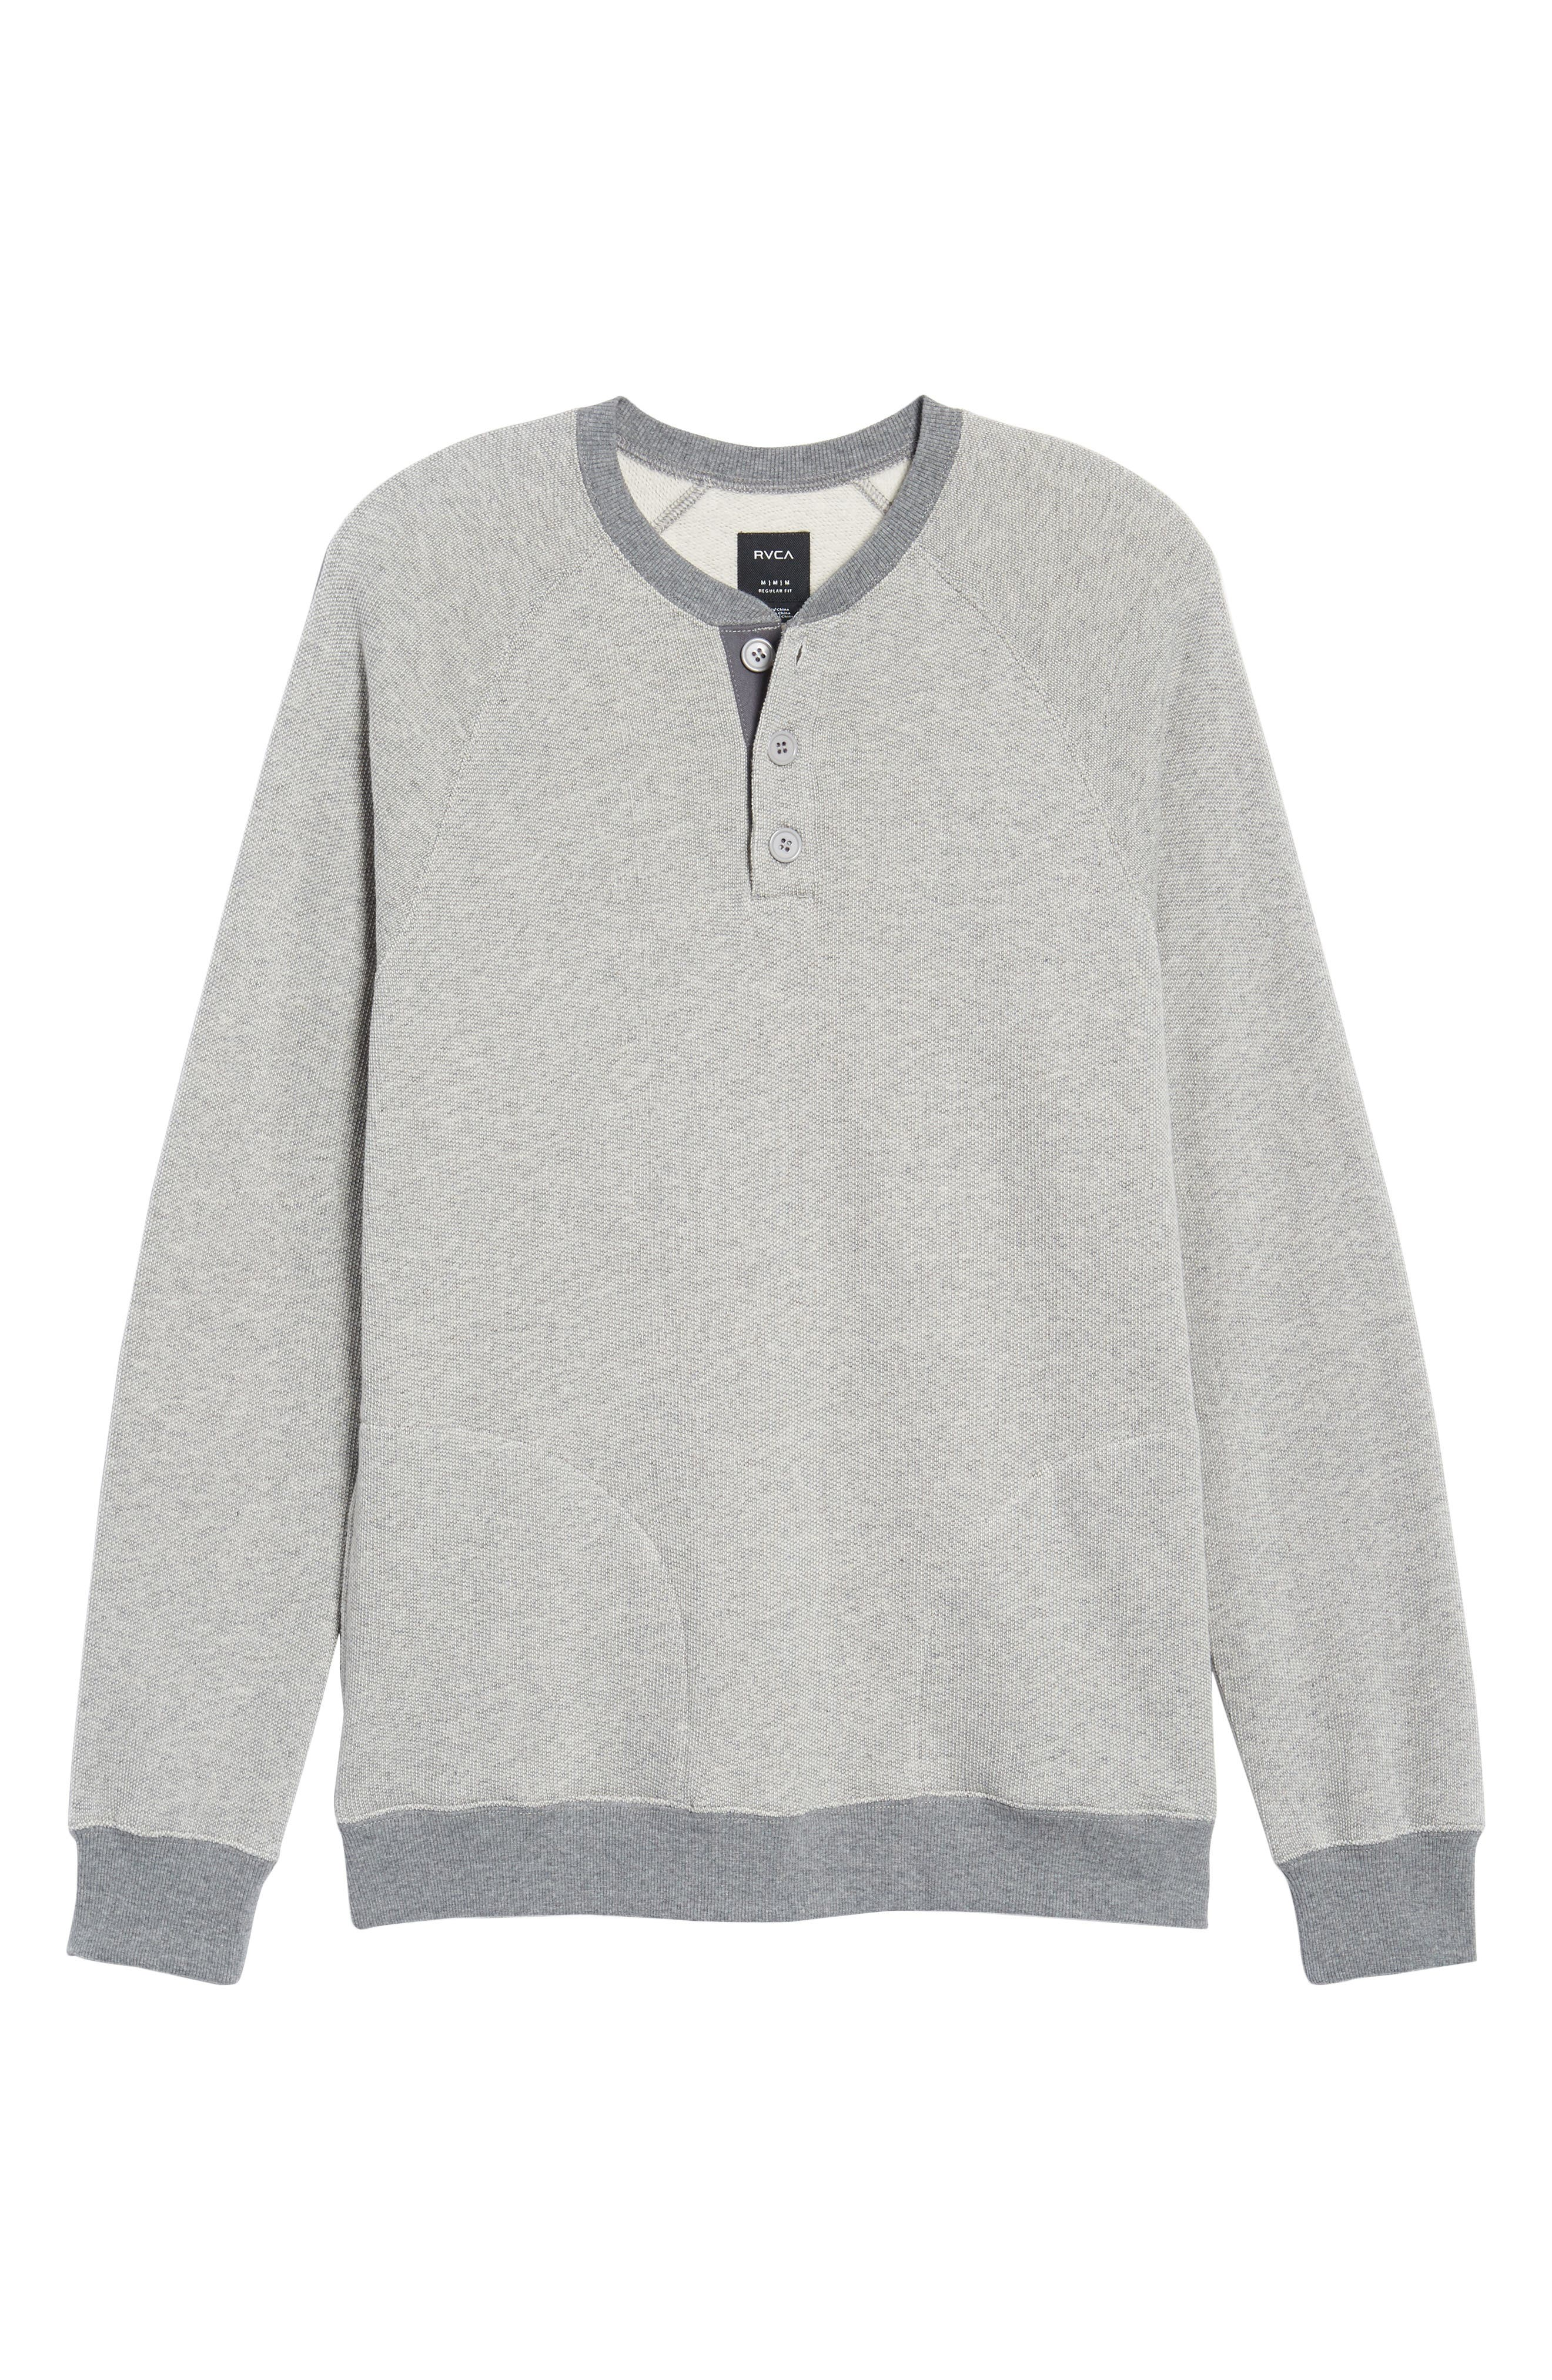 Capo Henley Pullover,                             Alternate thumbnail 6, color,                             051